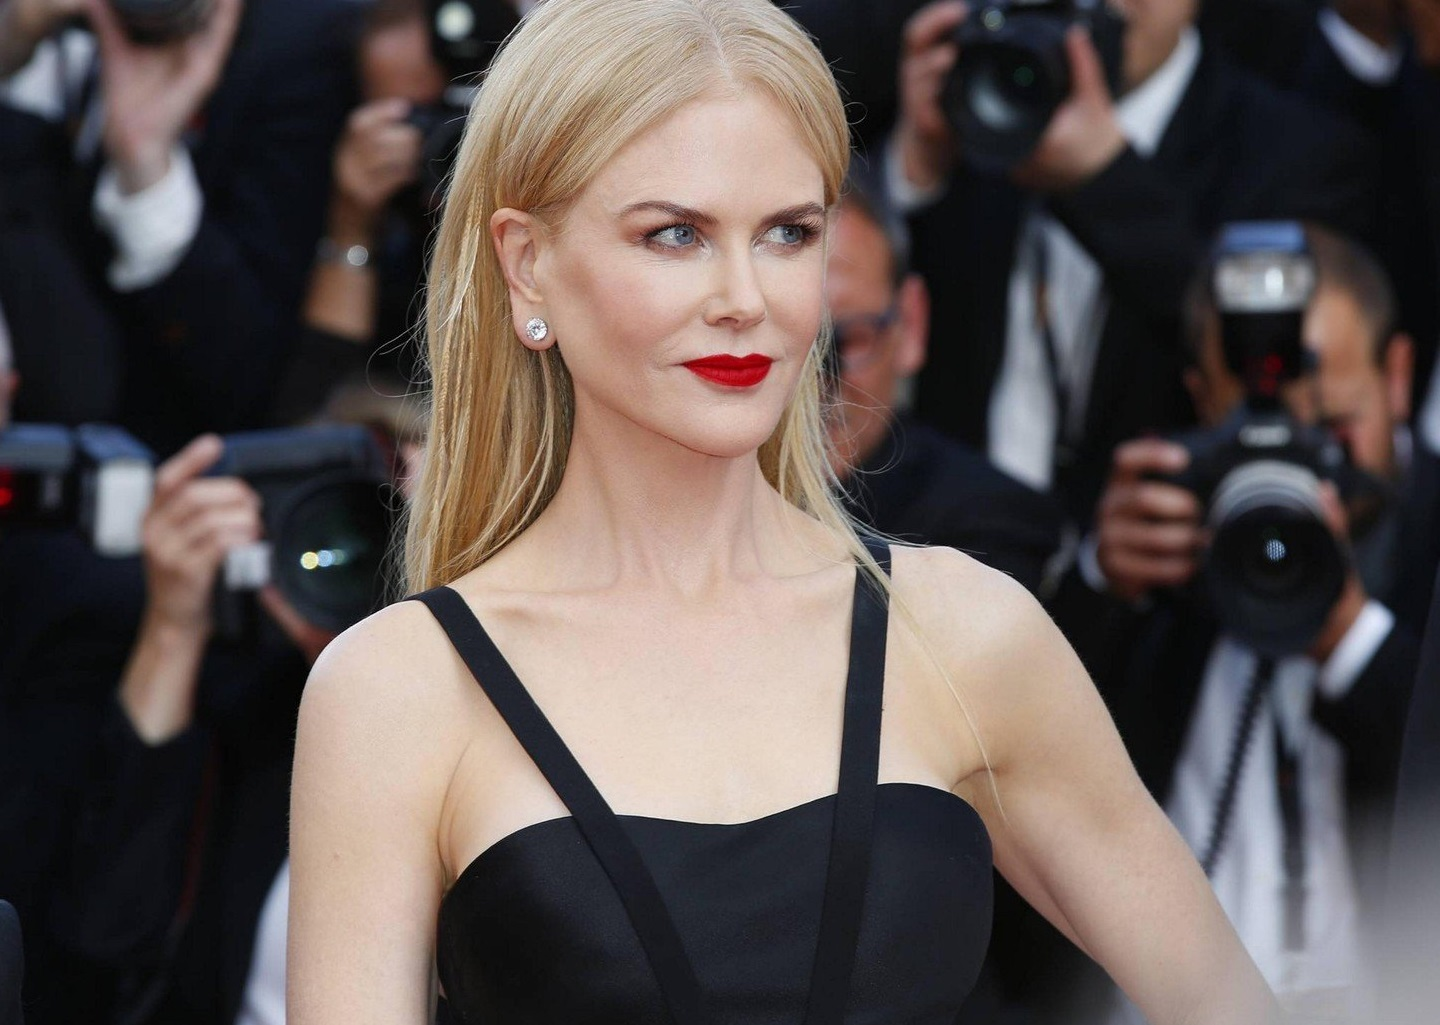 WORLDWIDE - Nicole Kidman at The Killing Of A Sacred Deer premiere, Cannes, France, 22nd May 2017., Image: 333323698, License: Rights-managed, Restrictions: MAVRIXONLINE.COM - +1 305 542 9275. WORLDWIDE Byline, credit, TV usage, web usage or linkback must read MAVRIXONLINE.COM. Failure to byline correctly will incur double the agreed fee., Model Release: no, Credit line: Profimedia, Mavrixphoto